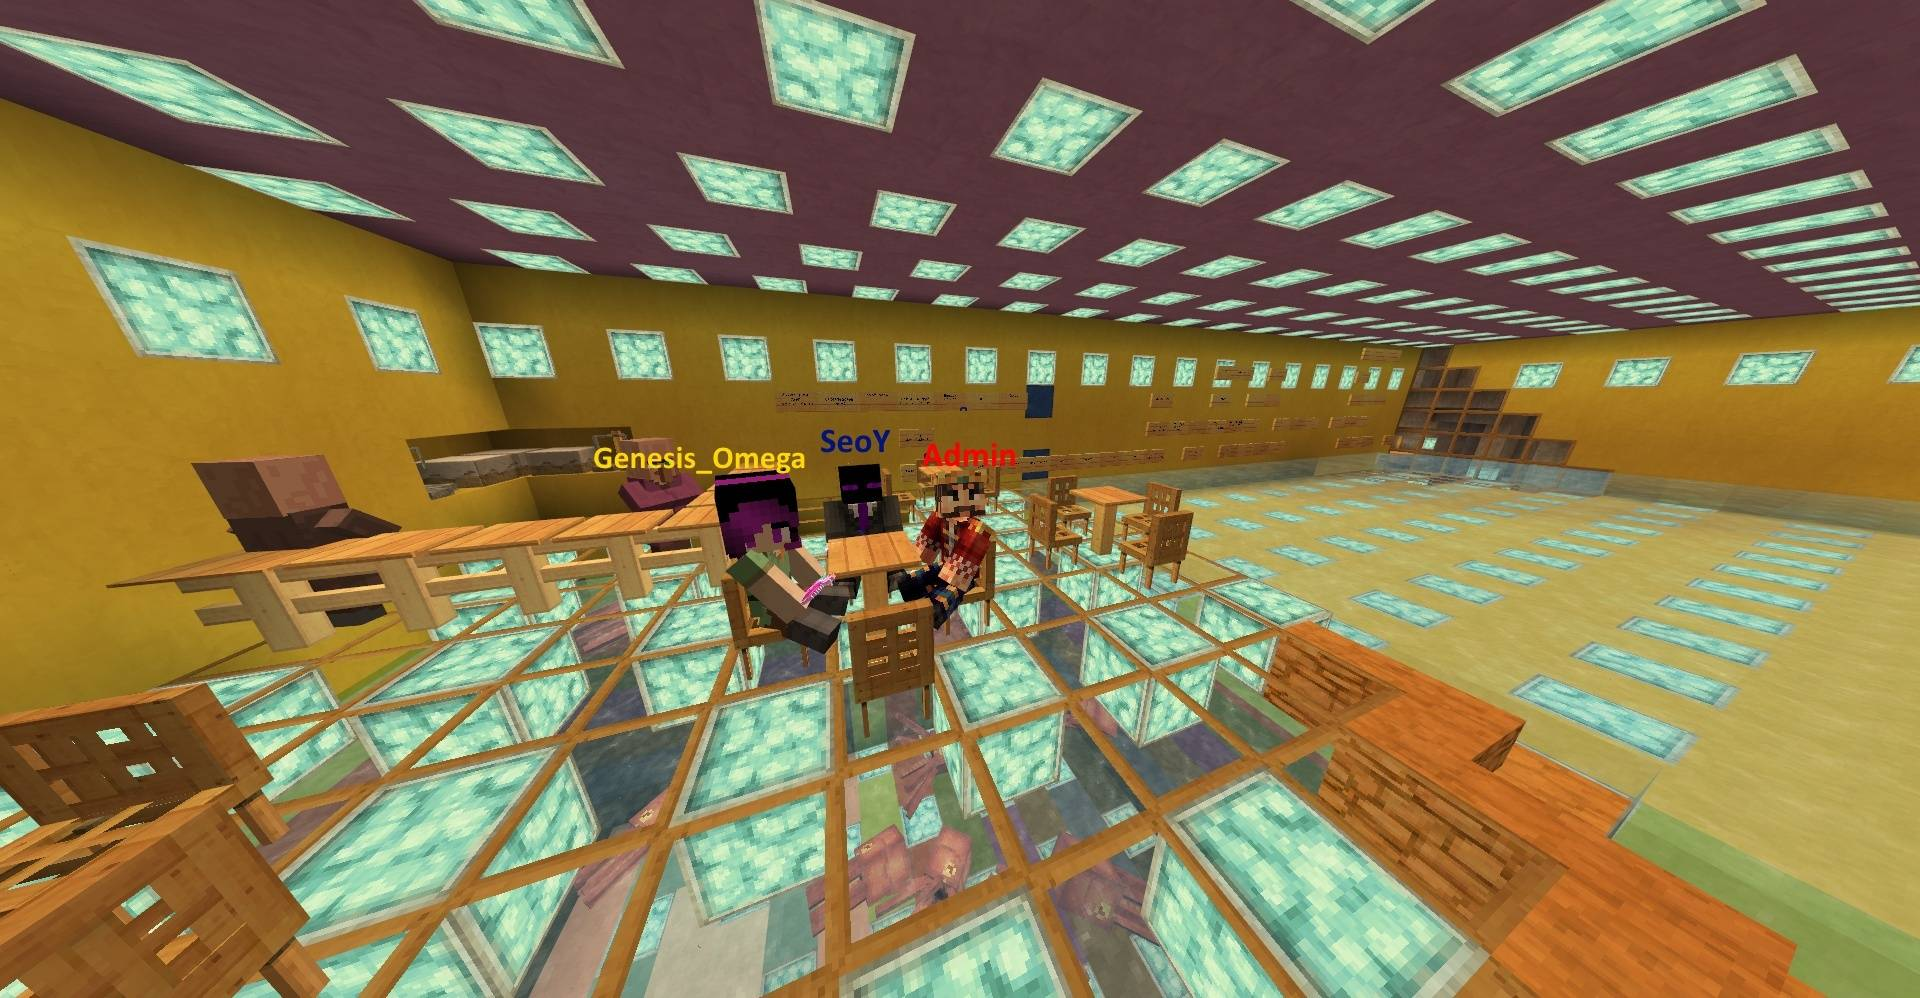 Minecraft pictures. 2f5d4t10